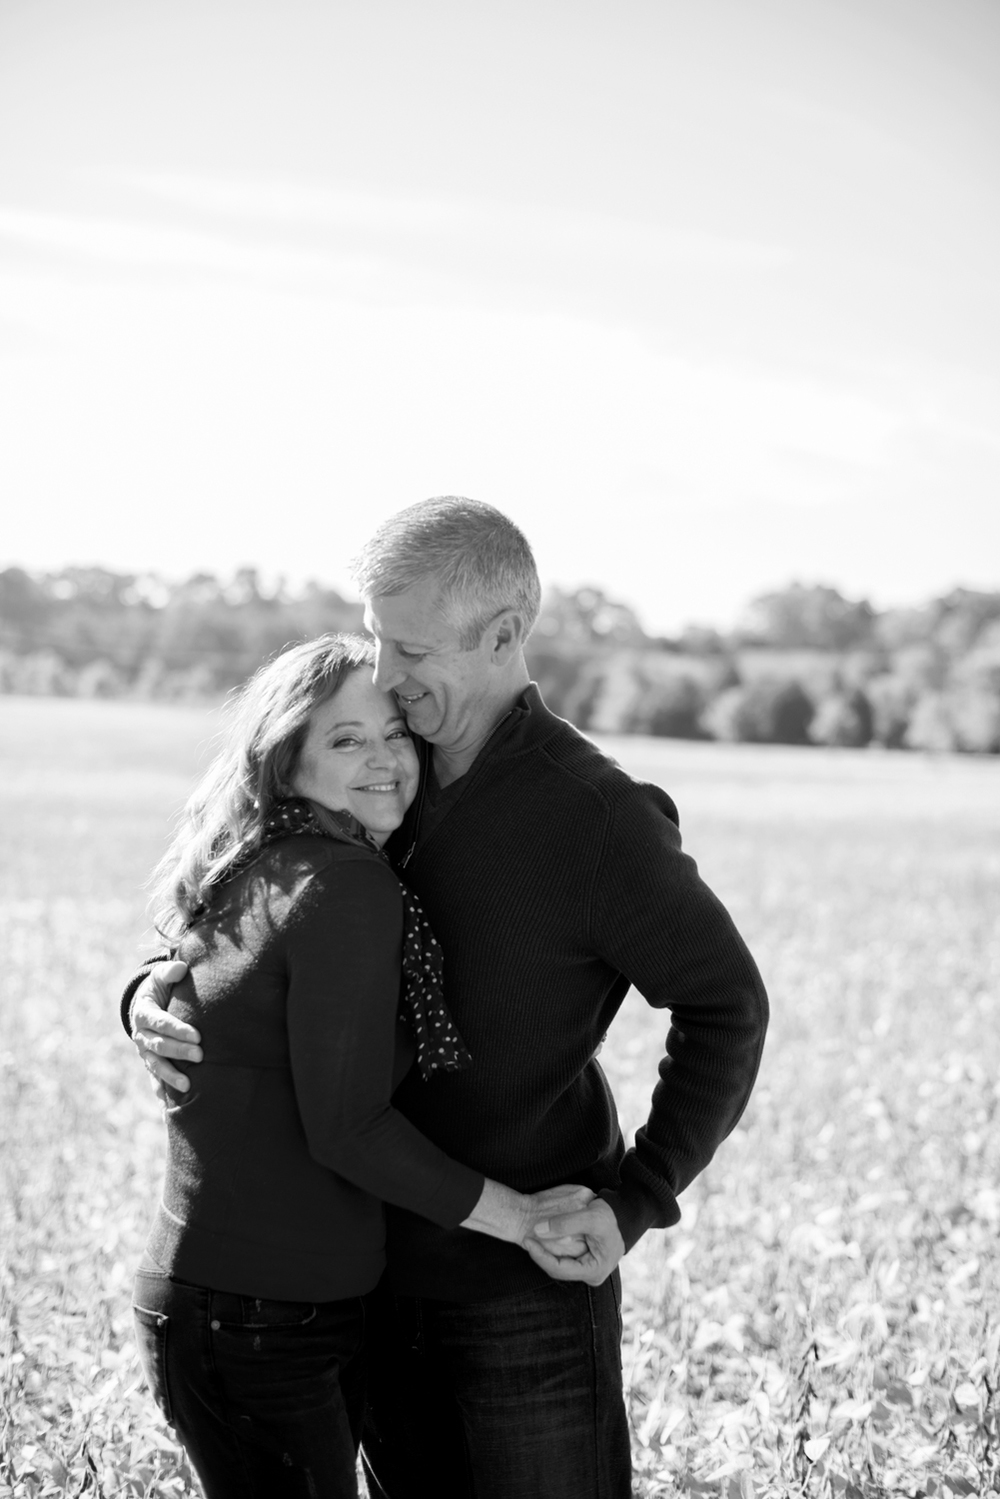 Windsor Castle Park couple's anniversary portraits in Smithfield, Virginia (black and white)